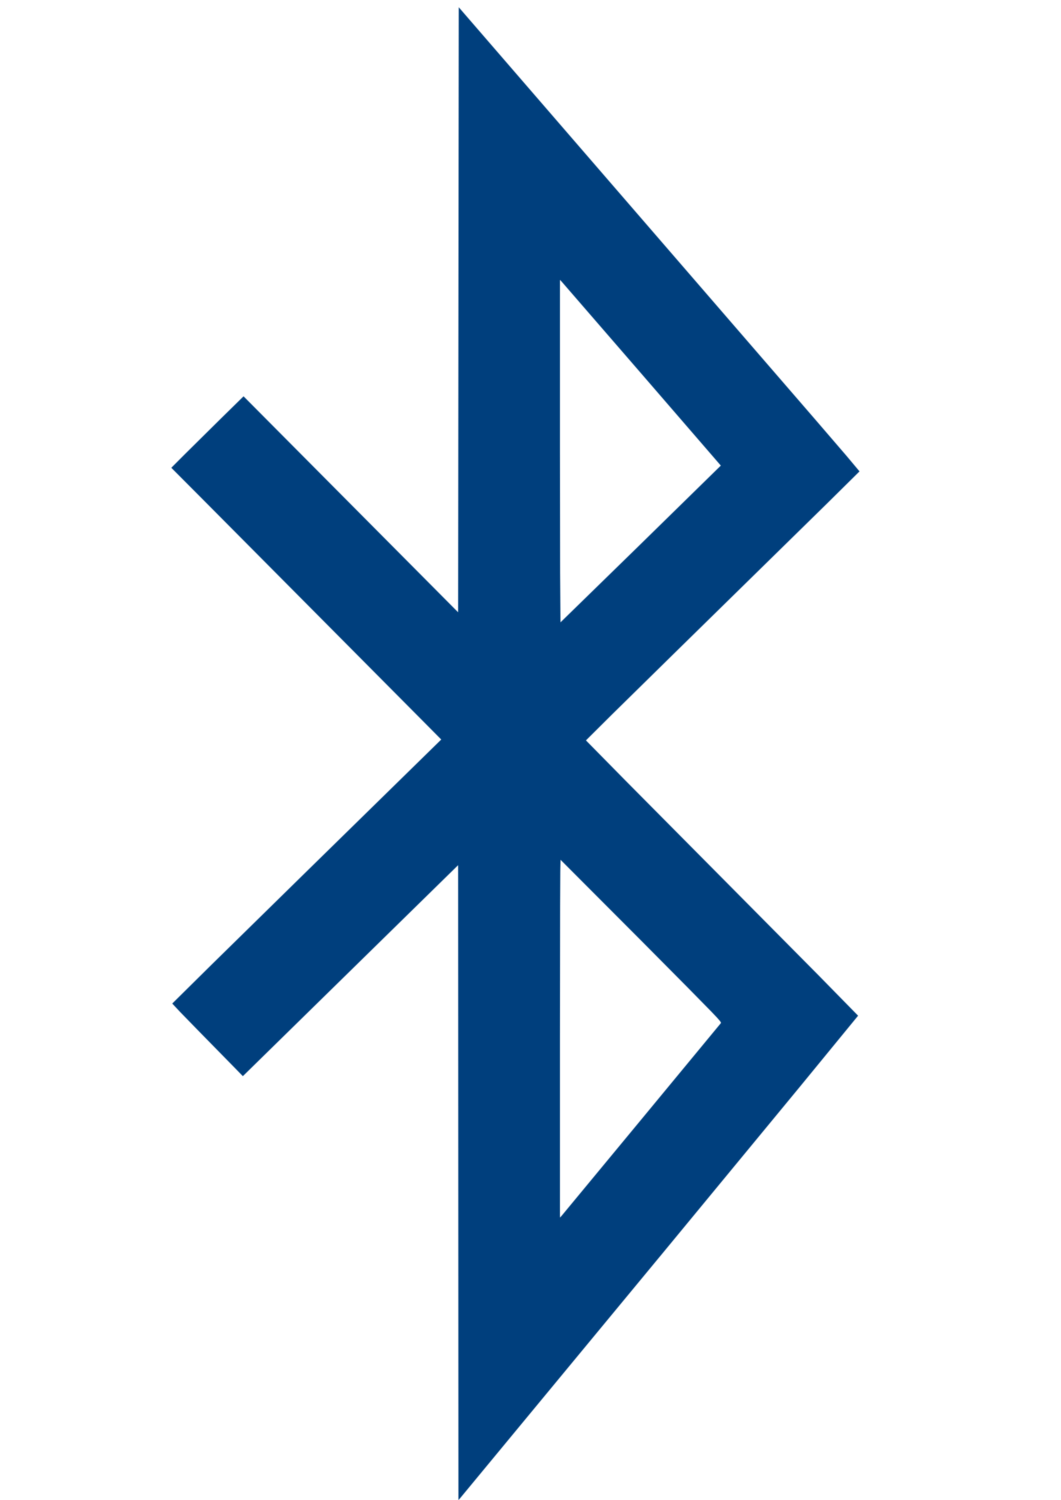 Gratis Download von iXimus.de: Bluetooth-Symbol, Bluetooth-Logo, Bluetooth, Logo, Icon, Blau, #000232